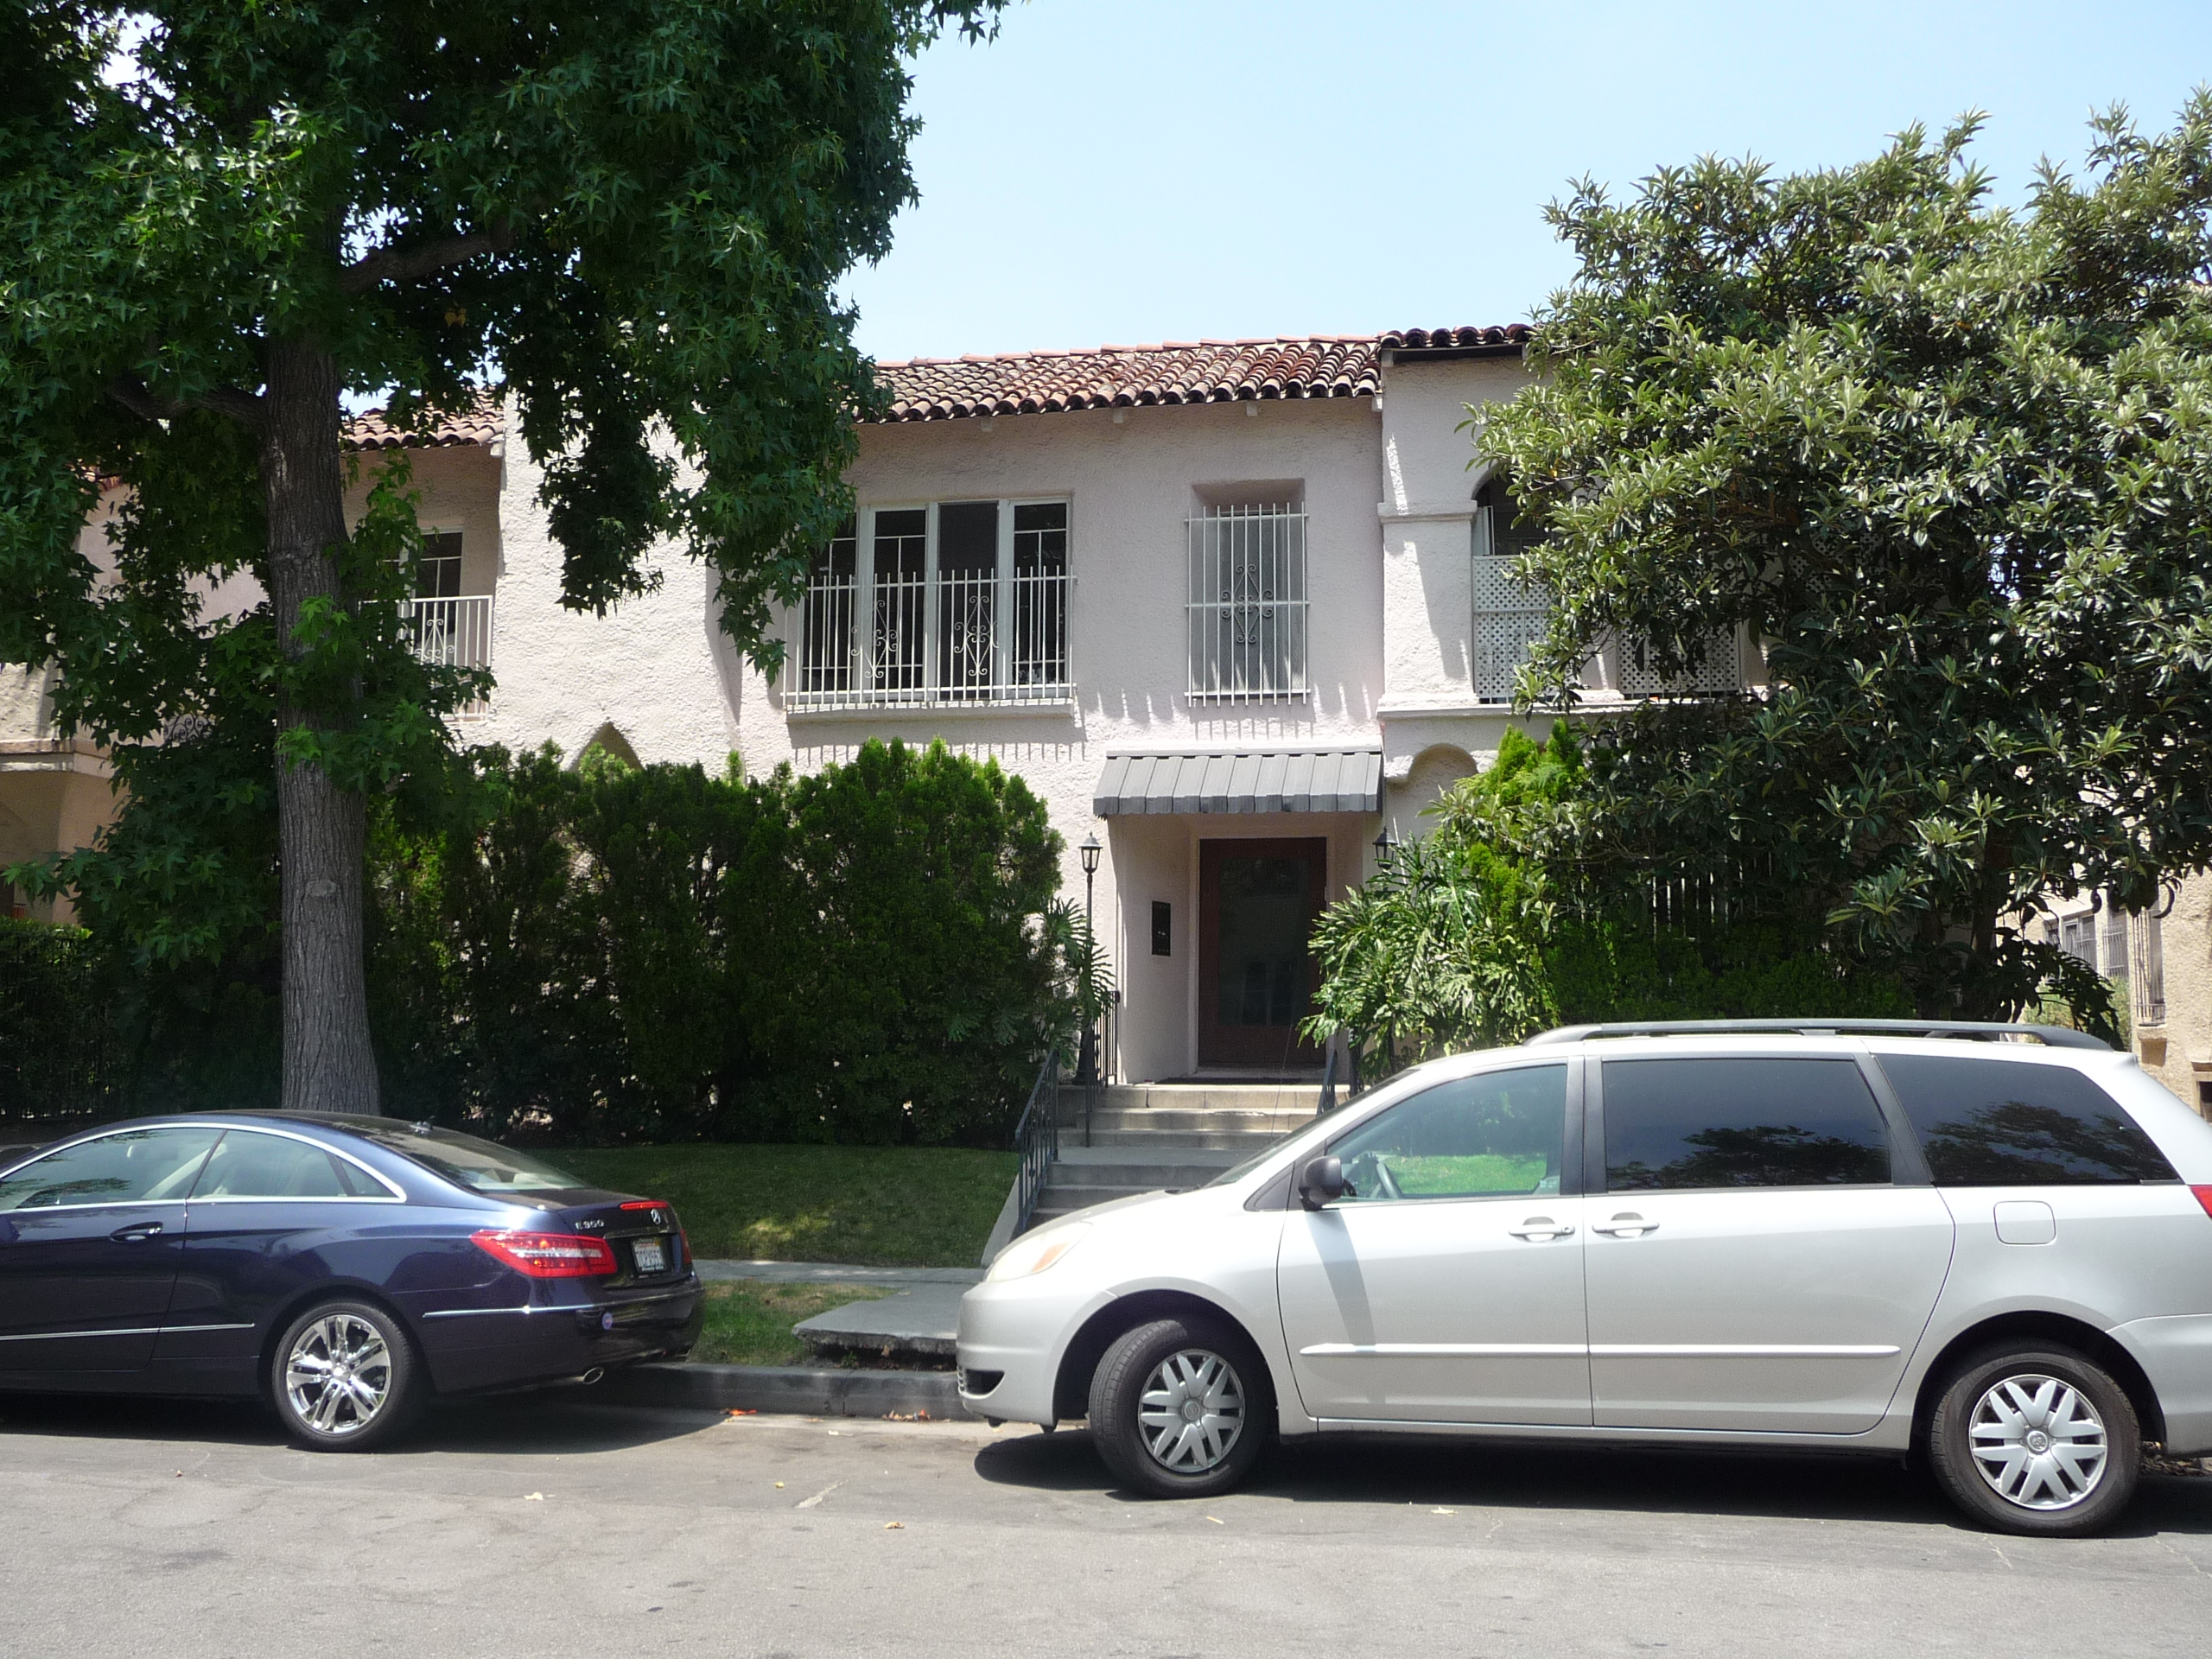 325 N SYCAMORE AVE - PHOTO